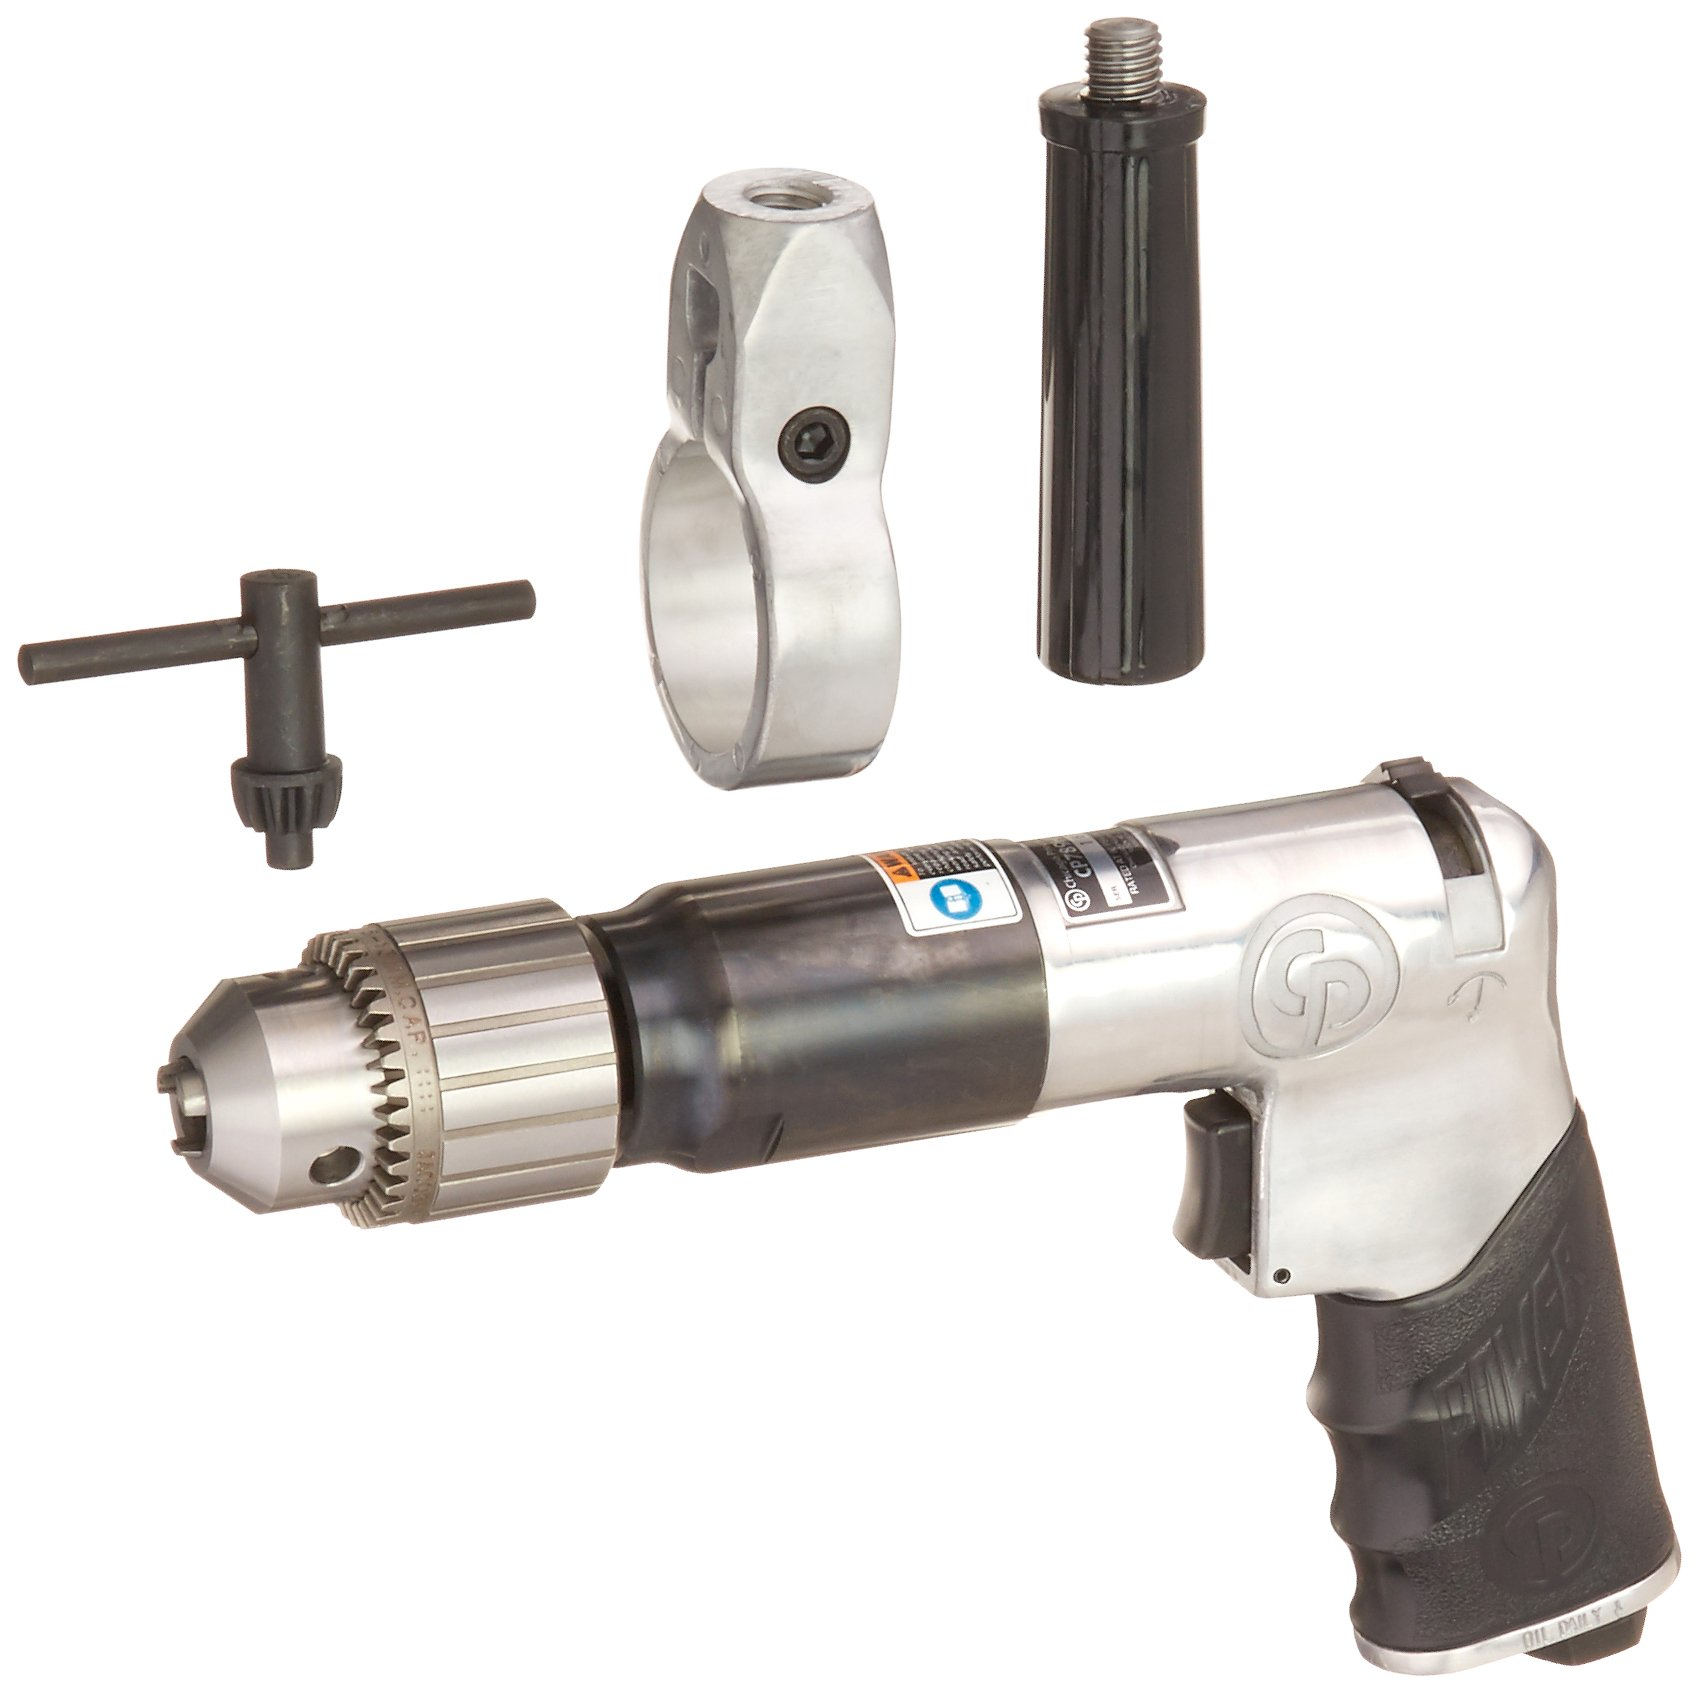 Chicago Pneumatic CP789HR 1/2-Inch Super Duty Reversible Air Drill